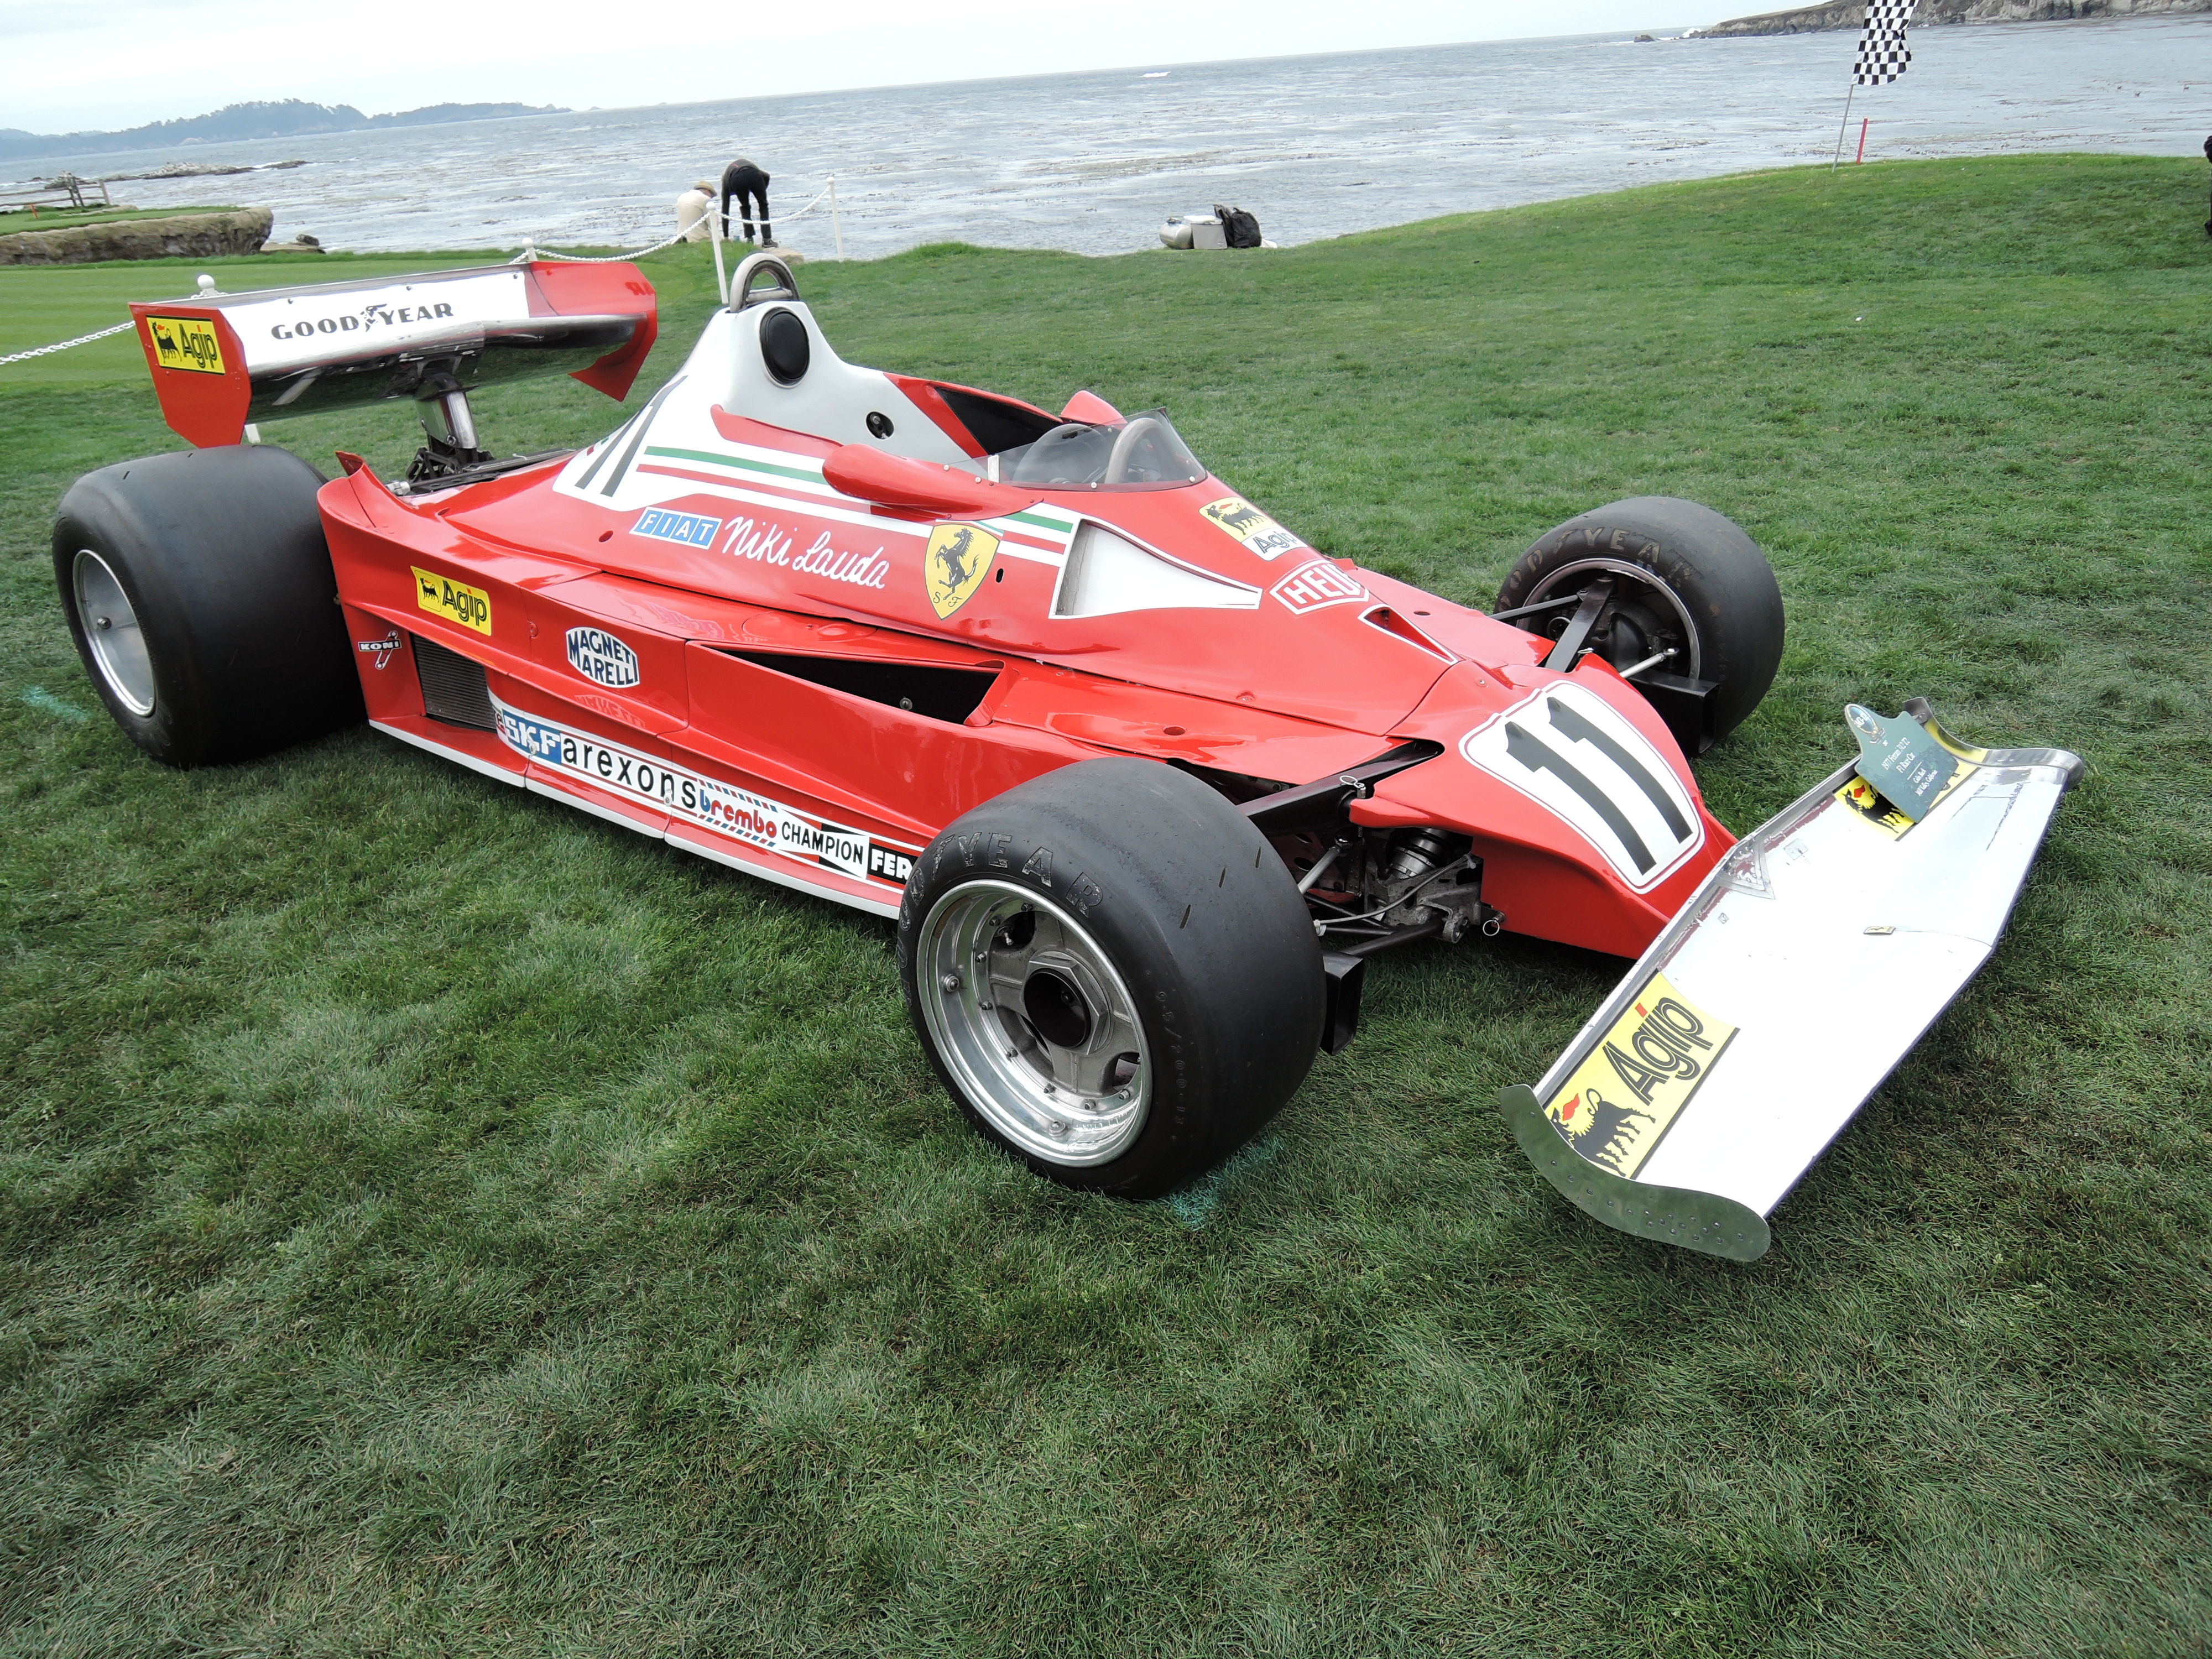 red 1977 Ferrari 312 T2 F1 Race Car; Sn 031- Pebble Beach Concours d'Elegance 2017